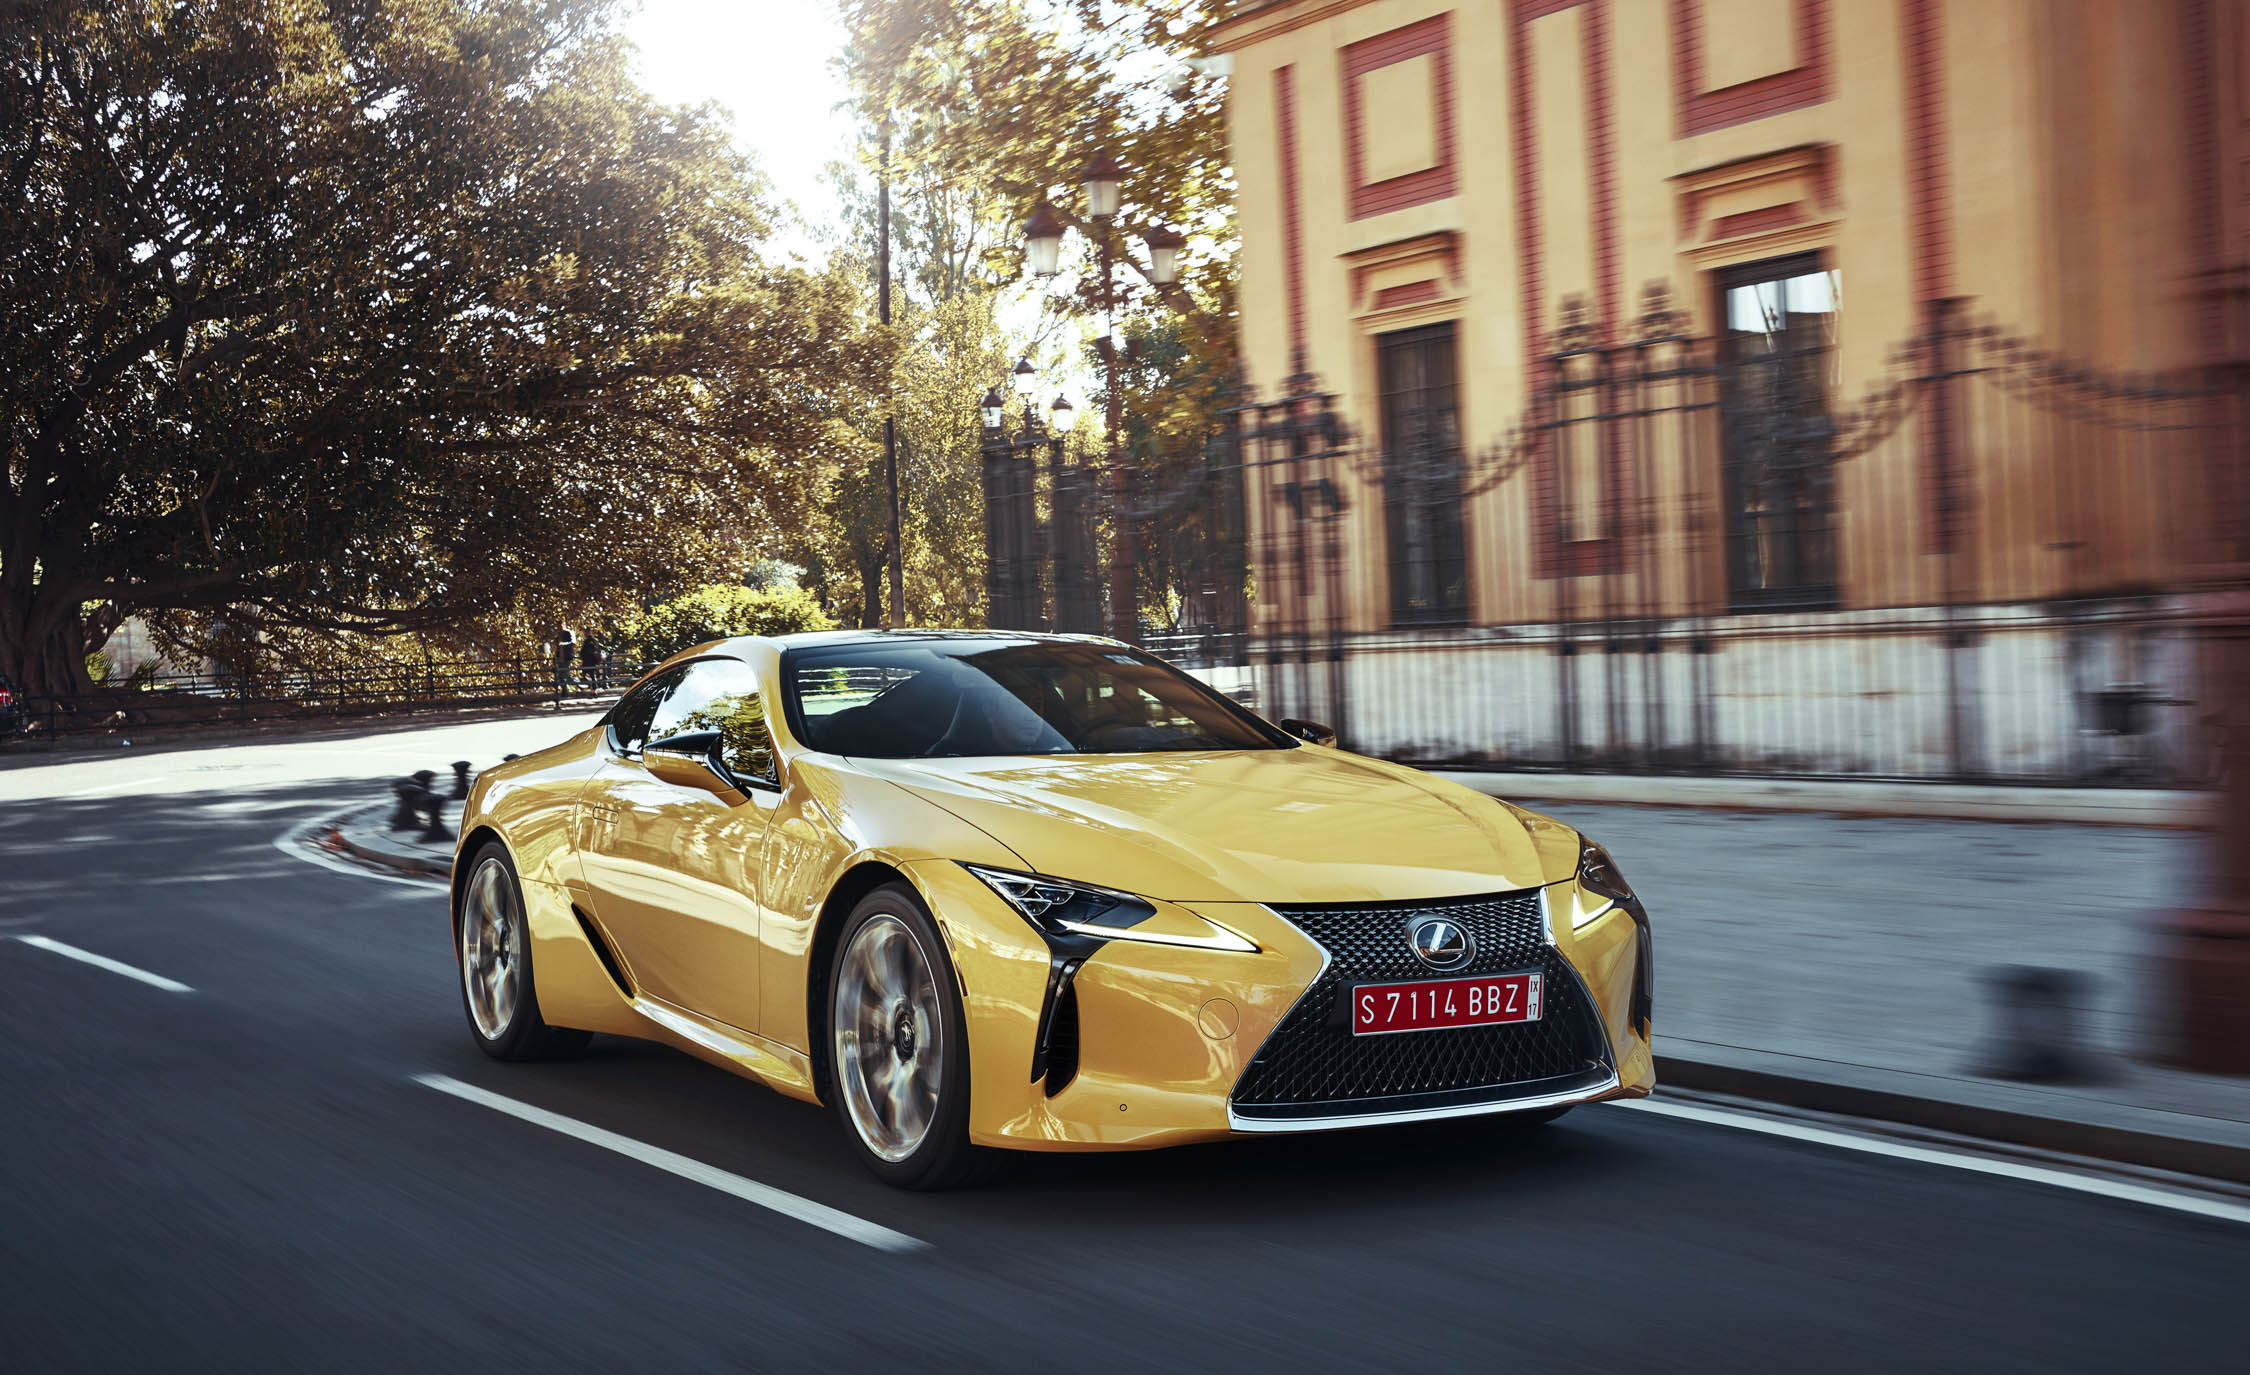 2018 Lexus Lc500 Yellow (View 71 of 84)